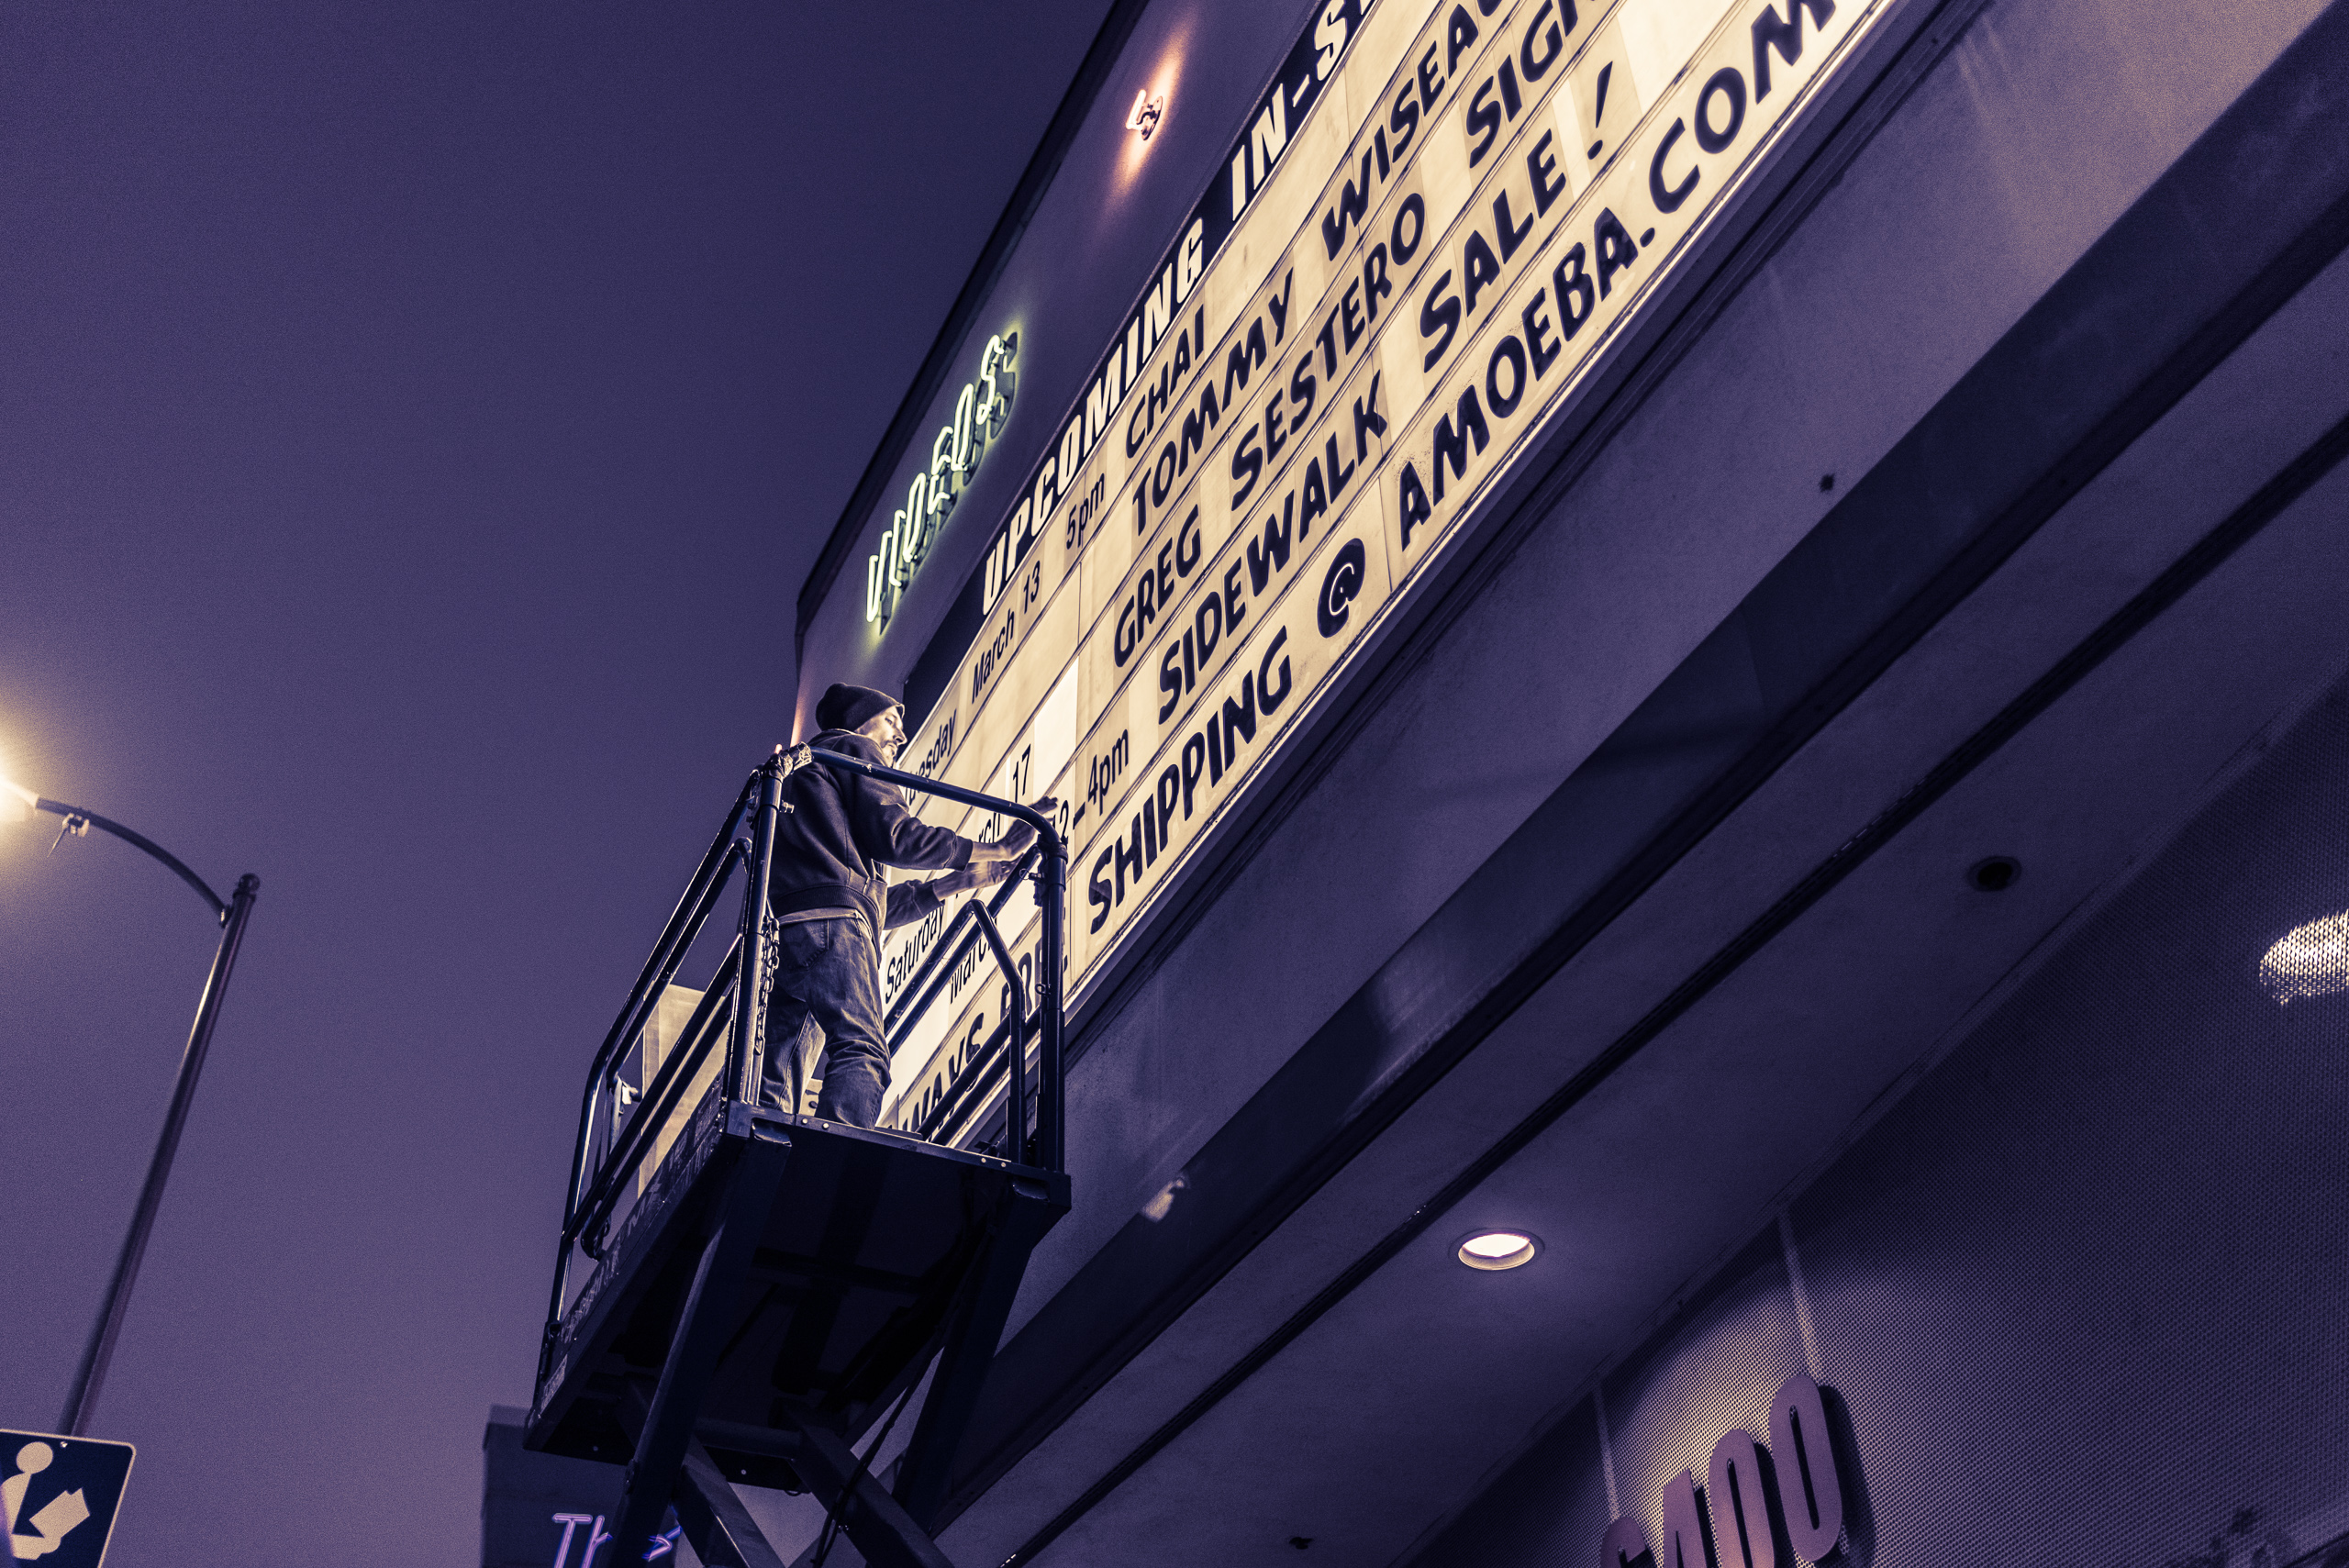 a man on a scissors-lift changes the upcoming events on the marquee outside Amoeba Music Hollywood on Sunset Blvd.